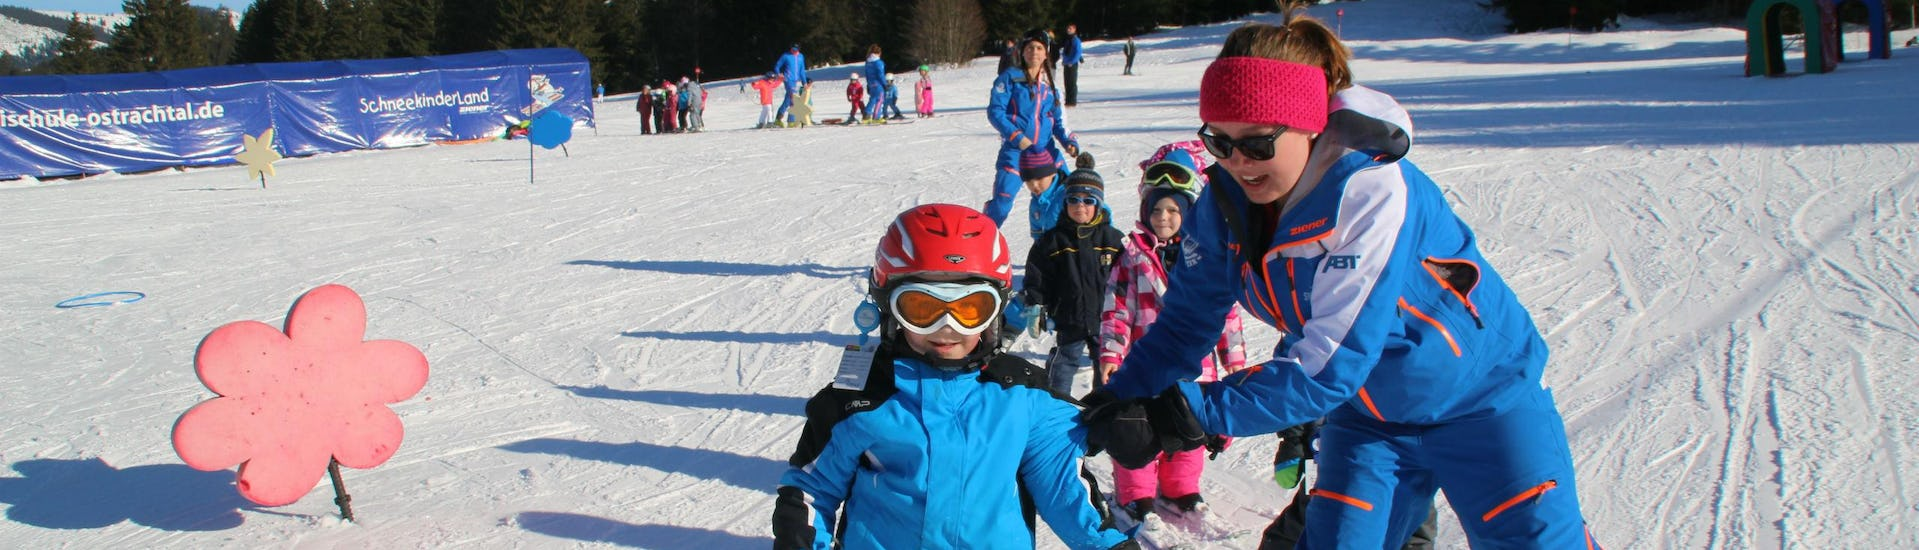 Ski Lessons for Kids (3-12 Years) - All Levels